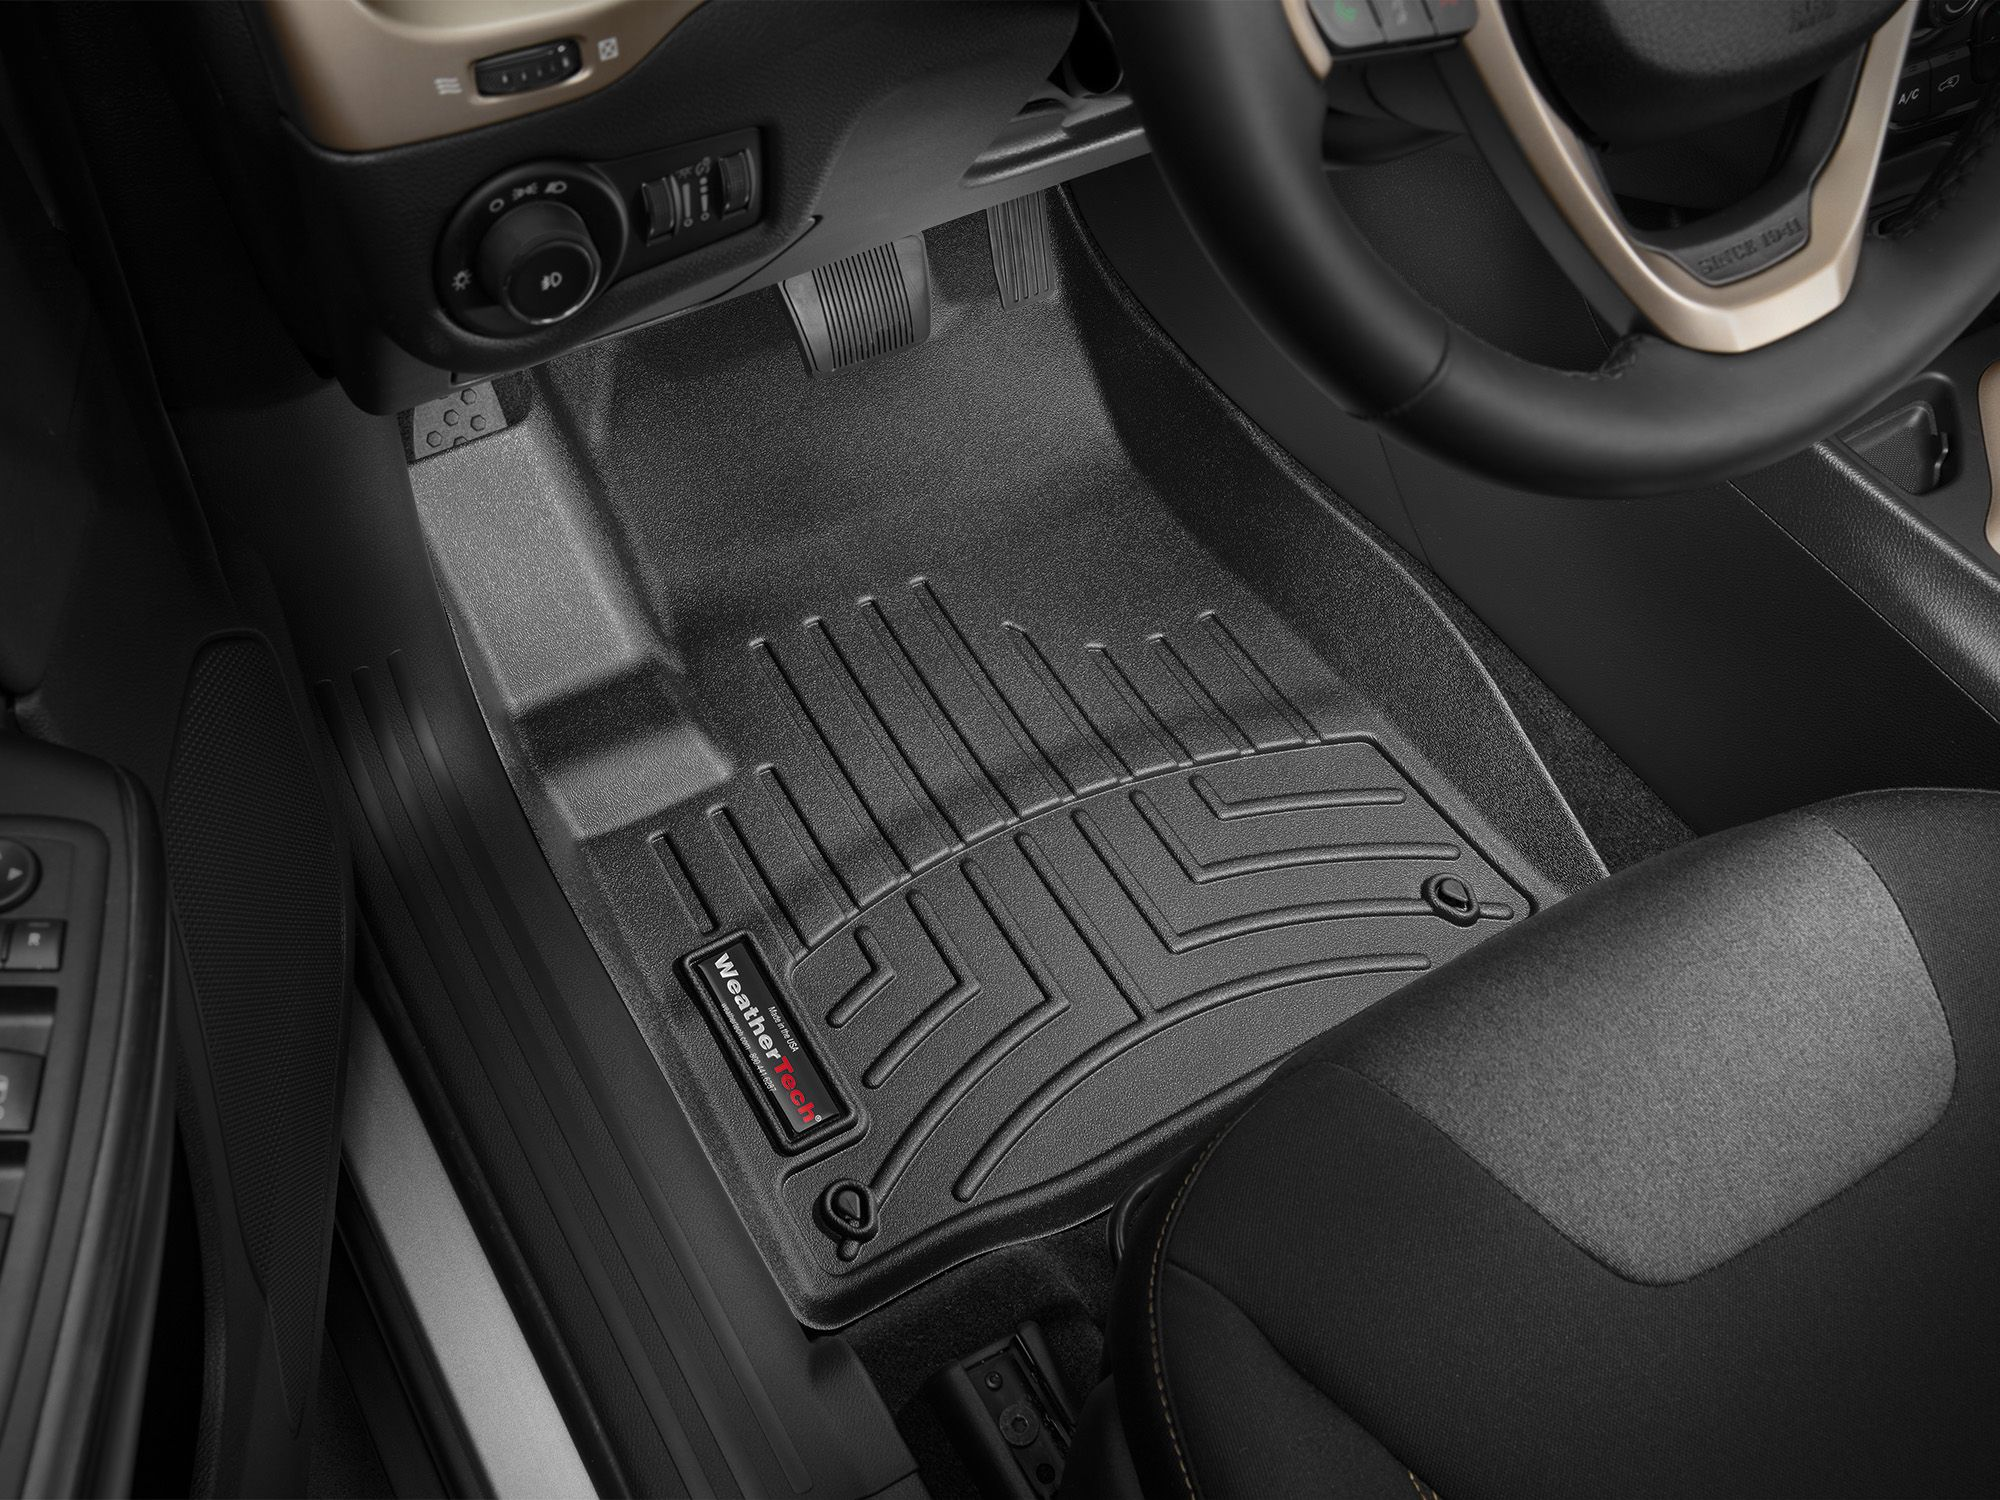 Weathertech Custom Fit Auto Accessories And Vehicle Protection Products Get Your Vehicle Ready For Fall With Weathertec Car Accessories Weather Tech Fit Car